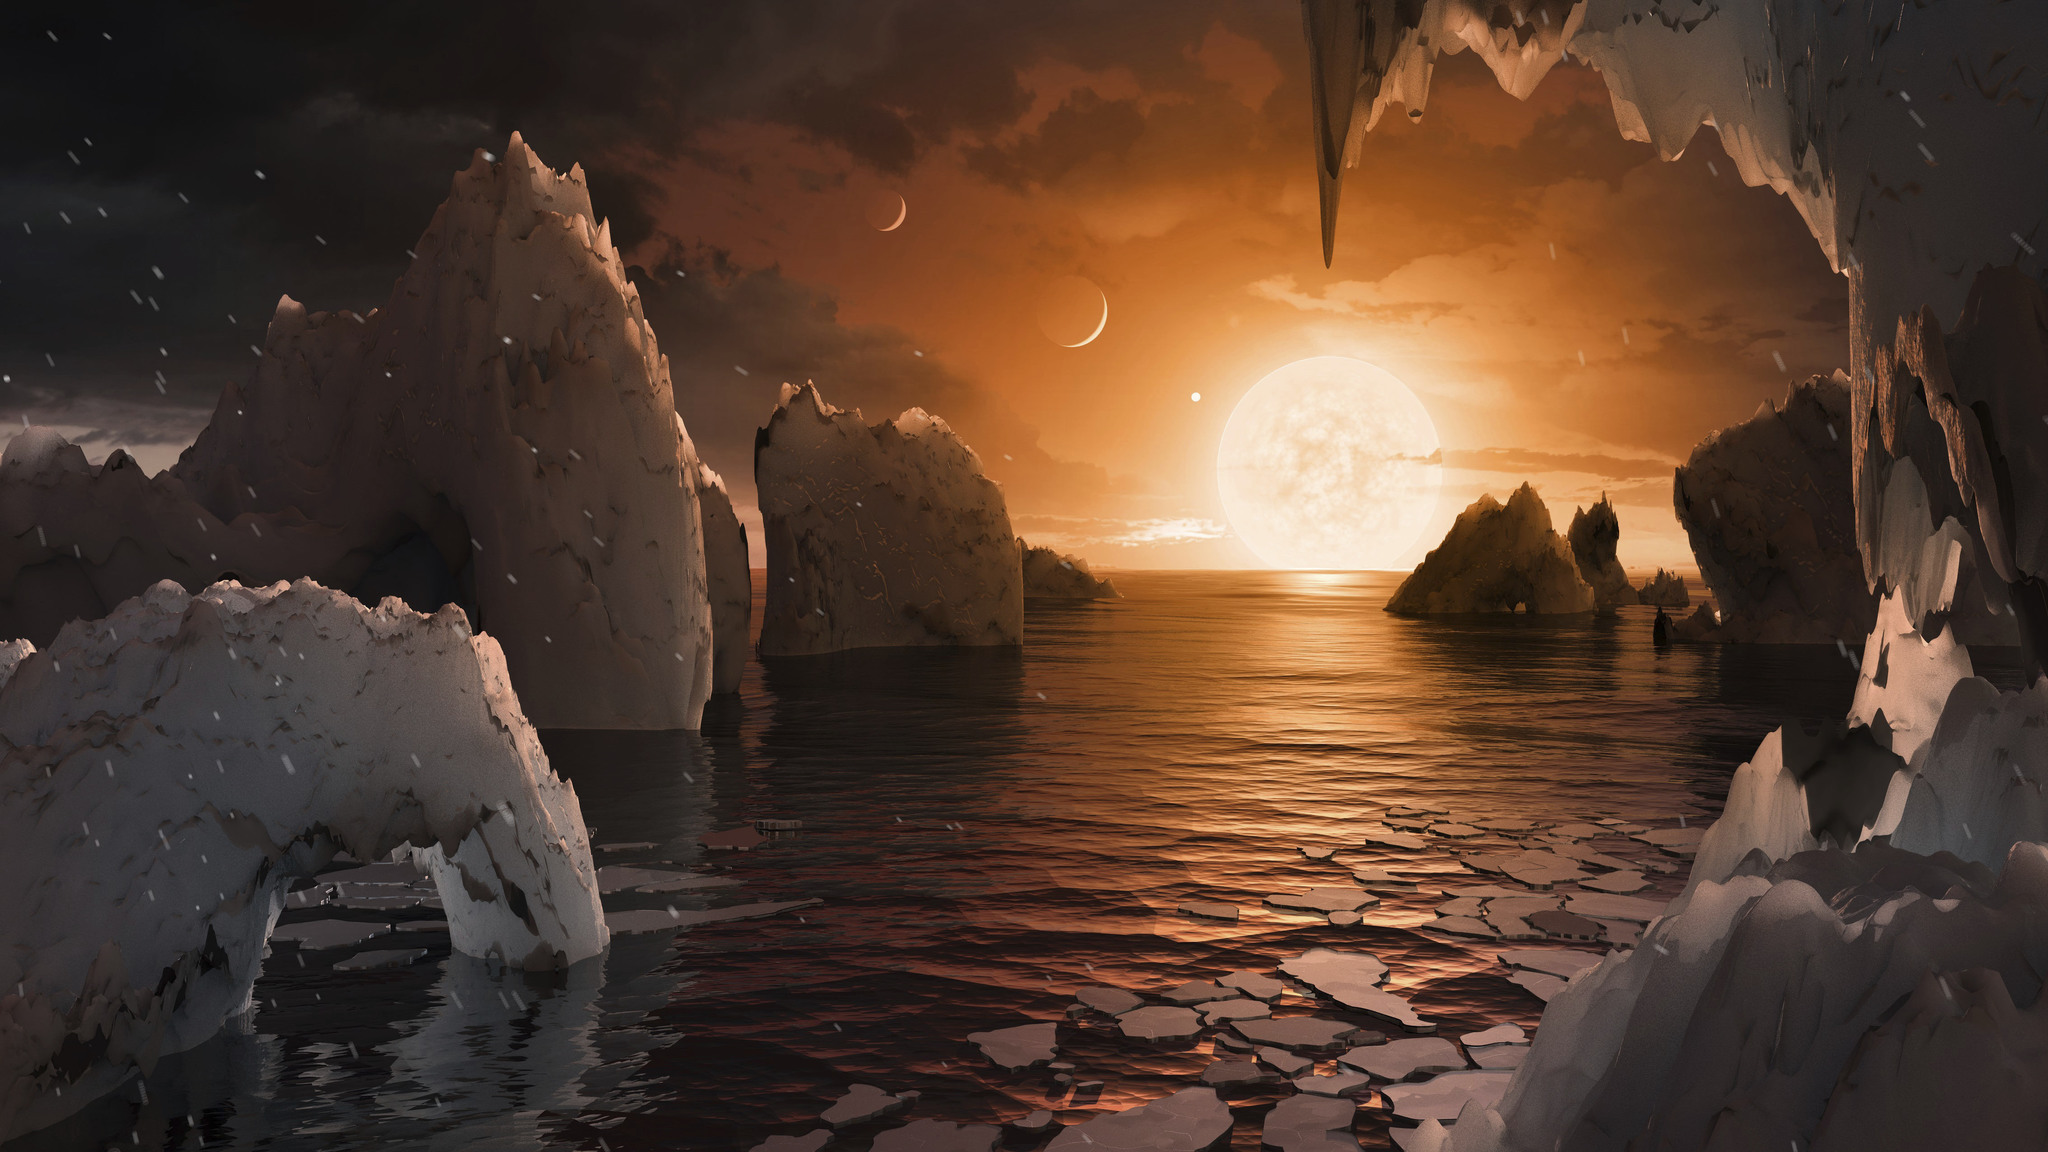 This image provided by NASA/JPL-Caltech shows an artist's conception of what the surface of the exoplanet TRAPPIST-1f may look like, based on available data about its diameter, mass and distances from the host star. The planets circle tightly around a dim dwarf star called Trappist-1, barely the size of Jupiter. Three are in the so-called habitable zone, where liquid water and, possibly life, might exist. The others are right on the doorstep. (NASA/JPL-Caltech via the Associated Press)